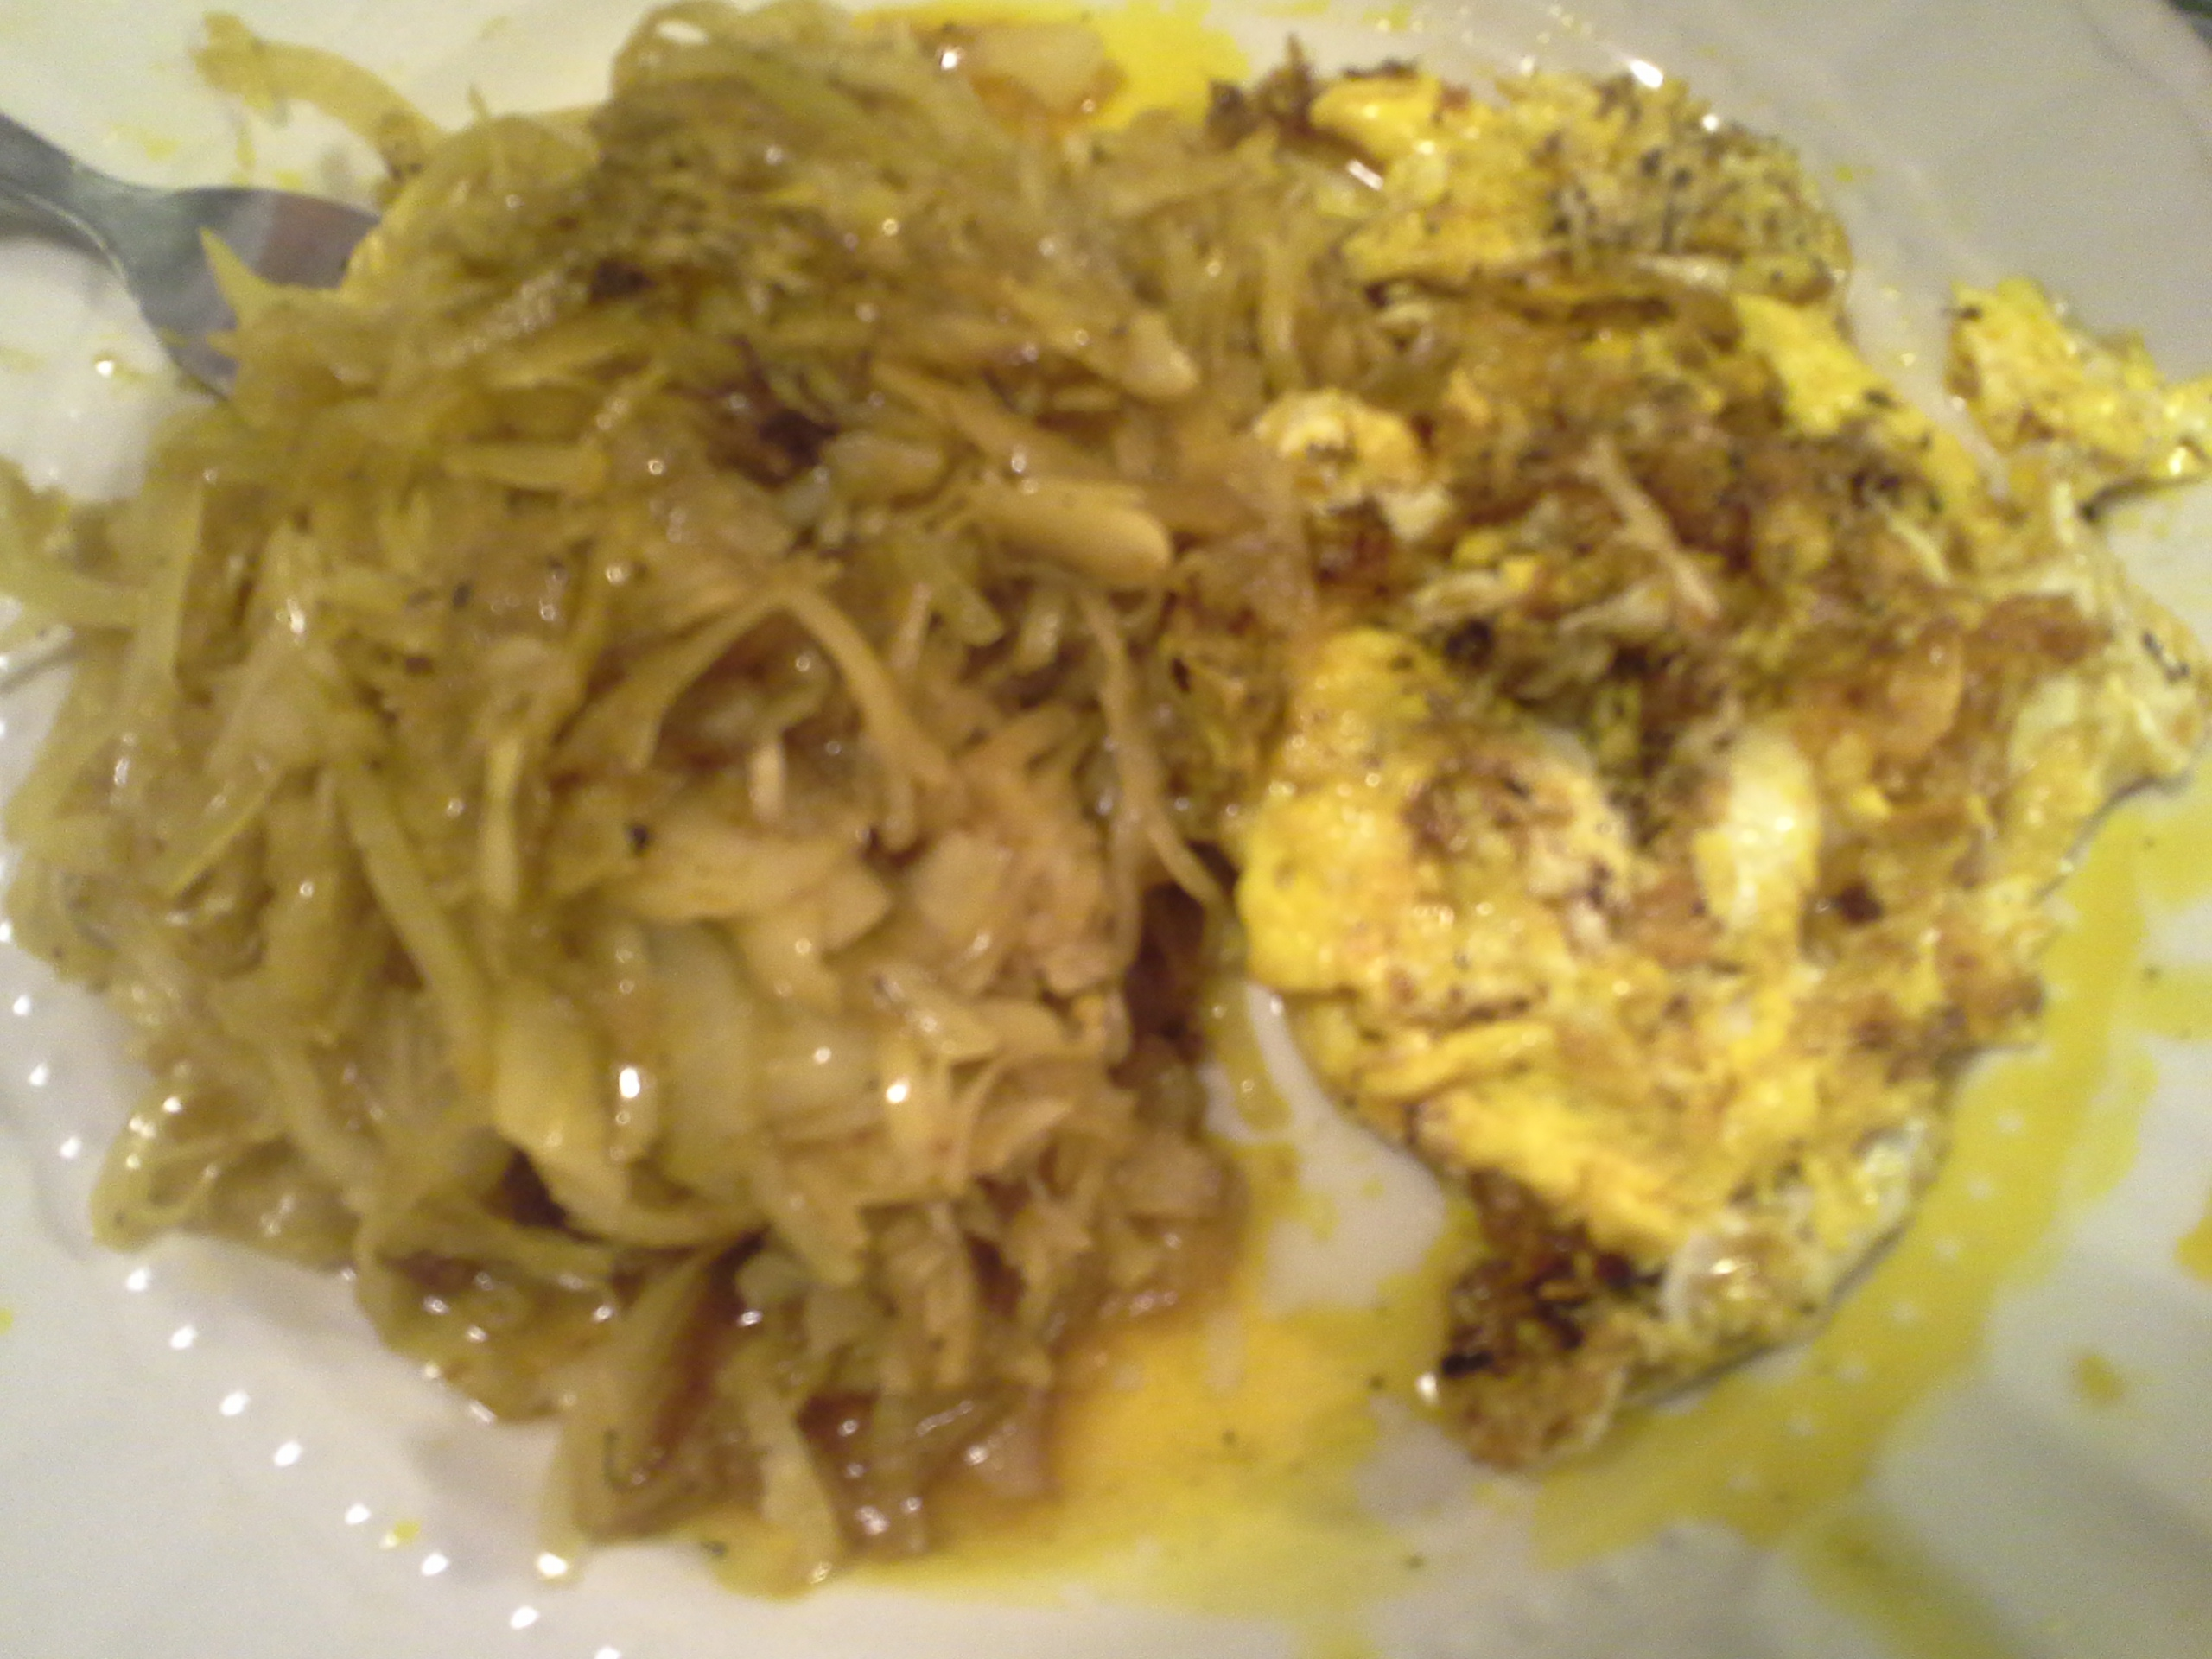 Dinner: 7:35 p.m. | 2 eggs, sauerkraut, 2 Tbsp. red palm oil